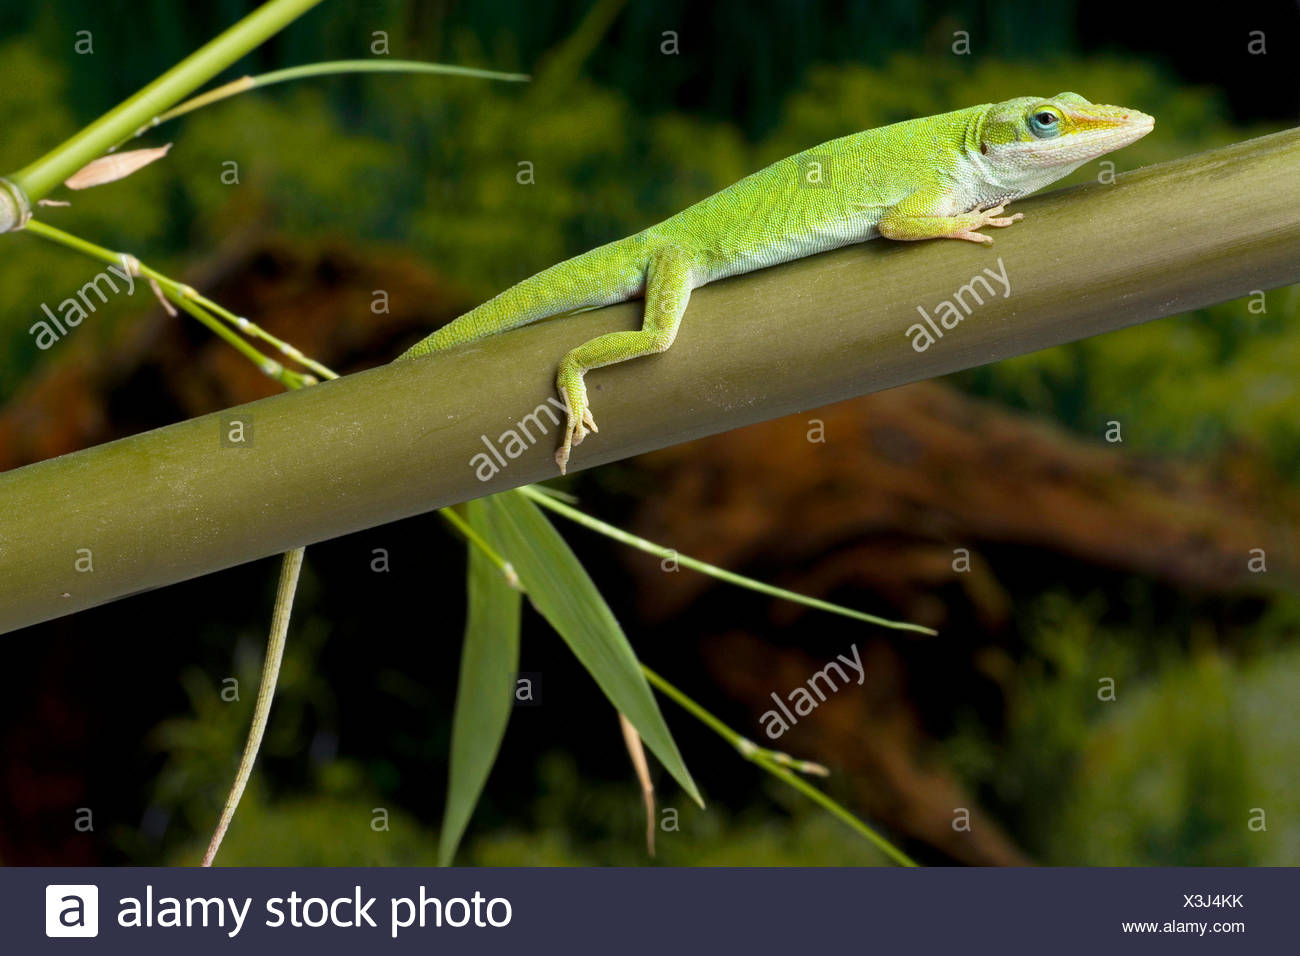 green anole (Anolis carolinensis), on a stem - Stock Image